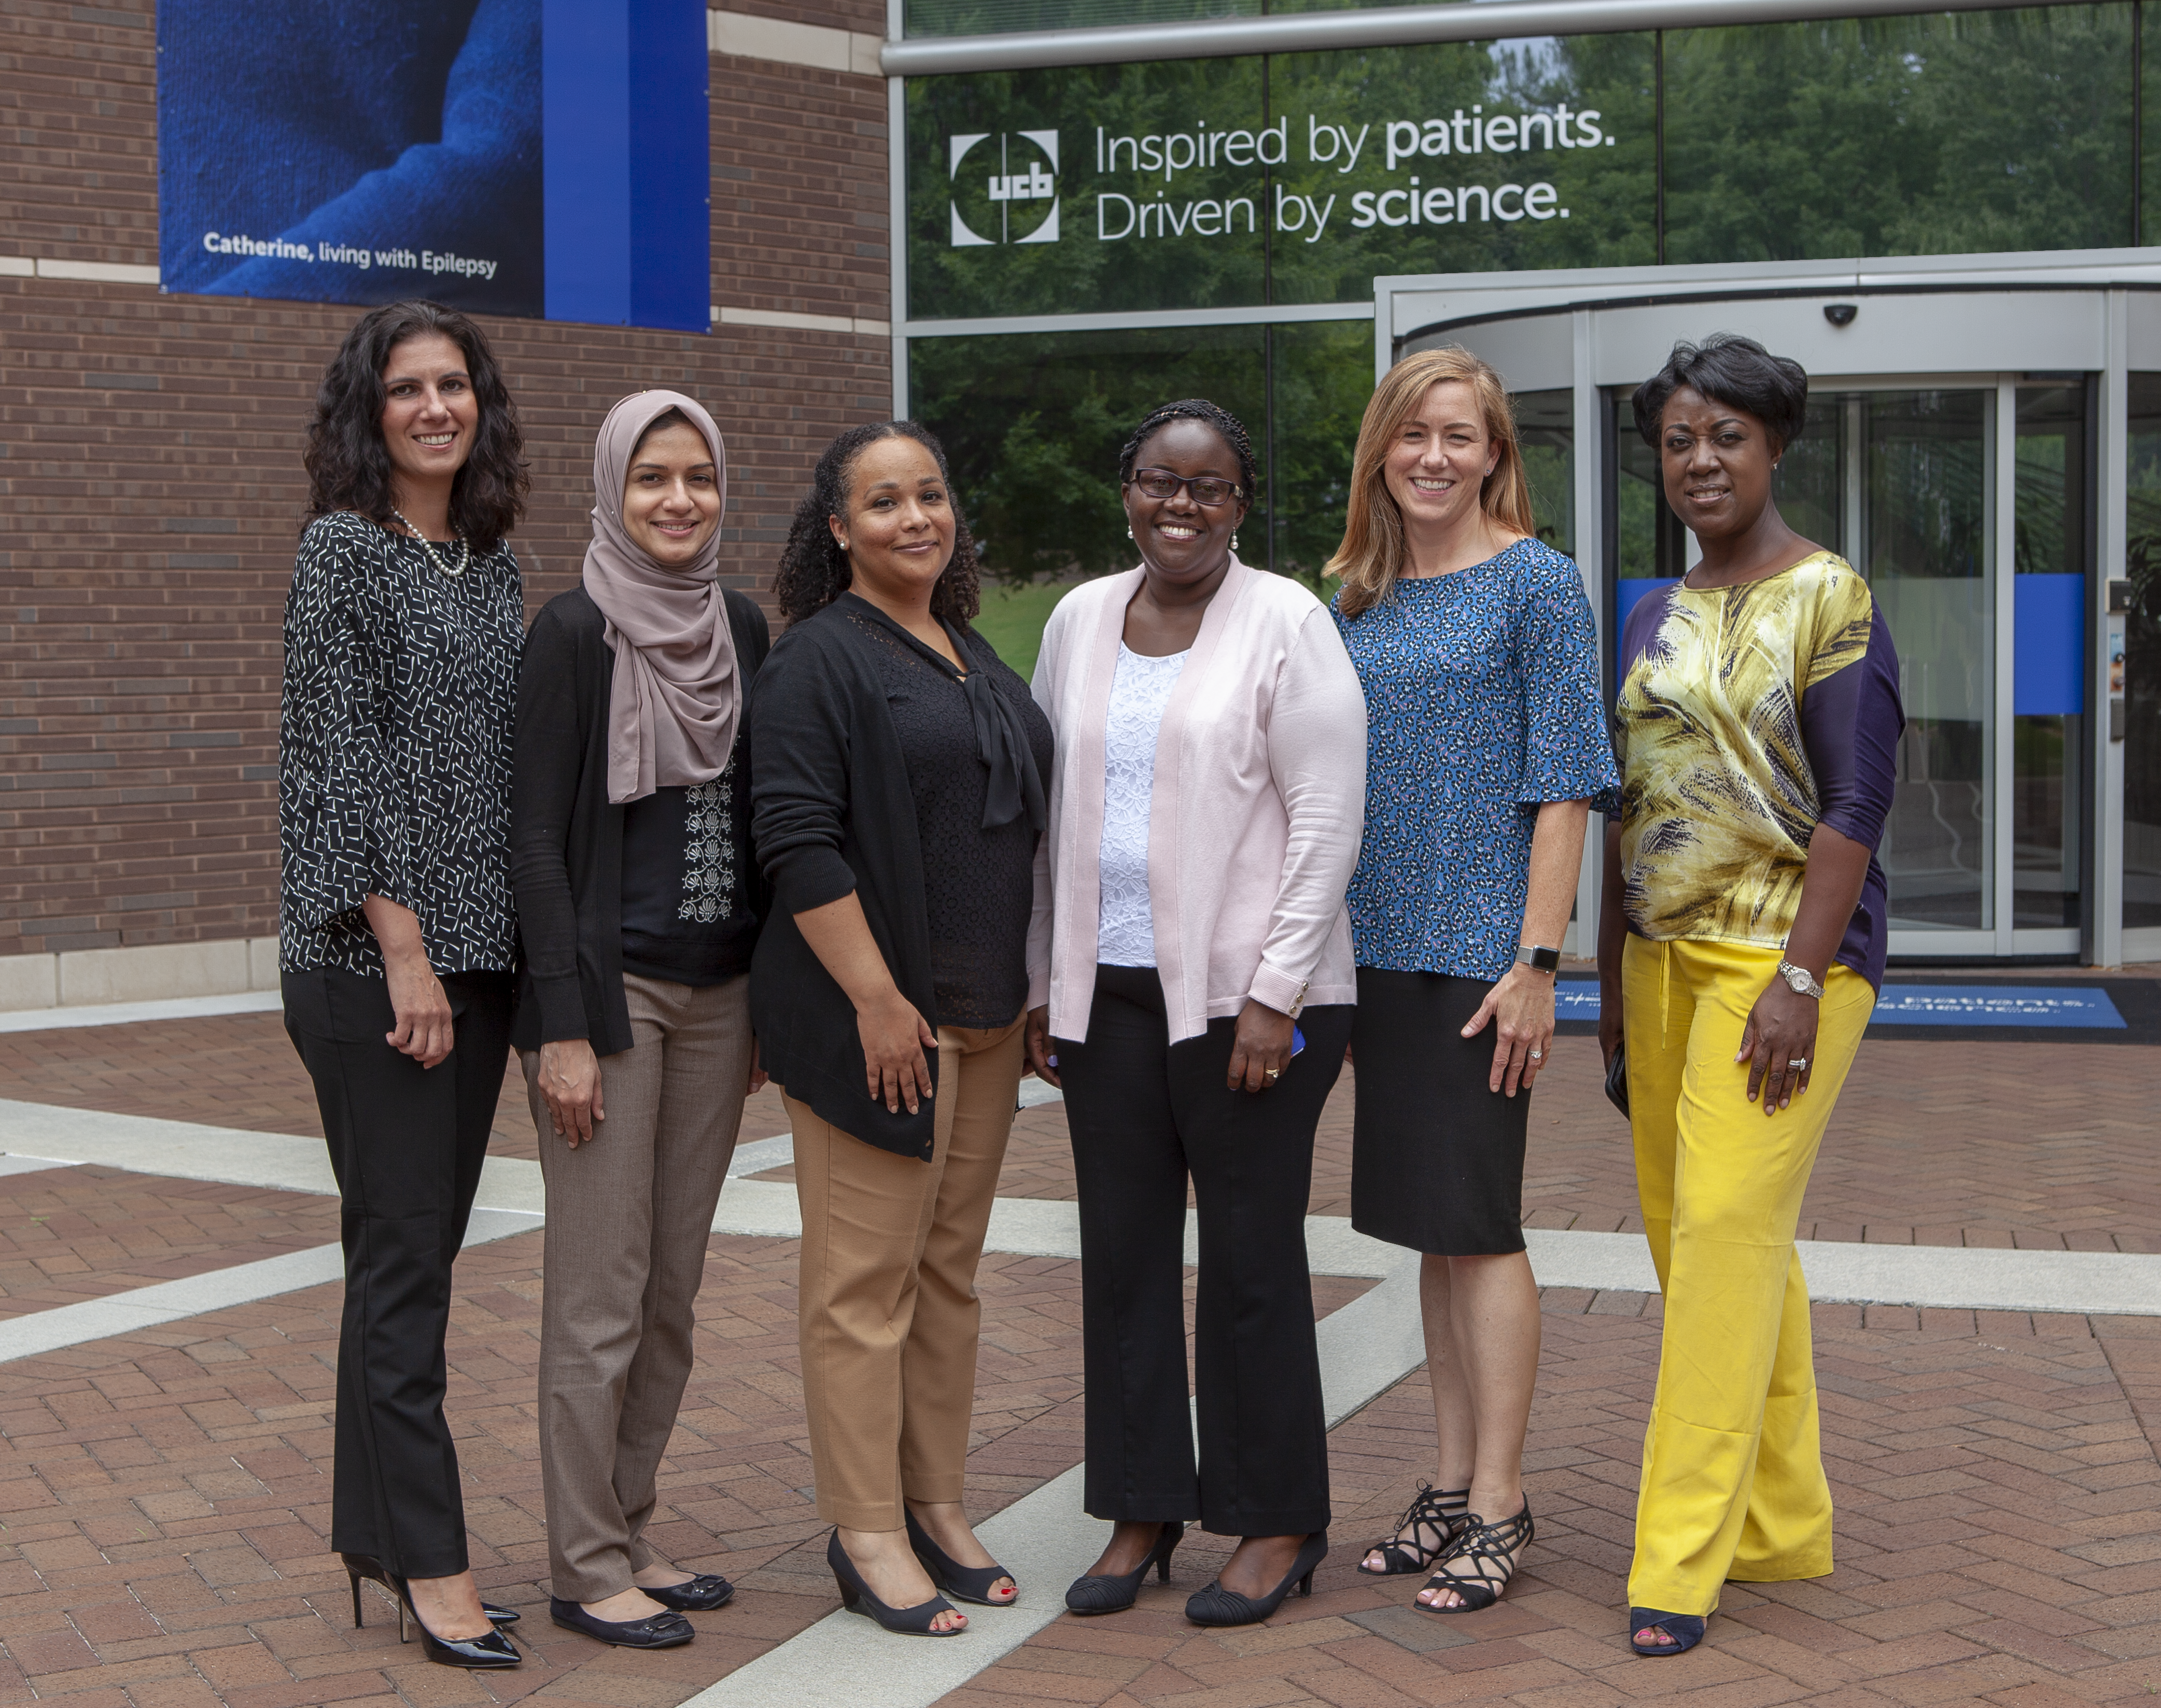 Six of the fellowship preceptors standing in a line